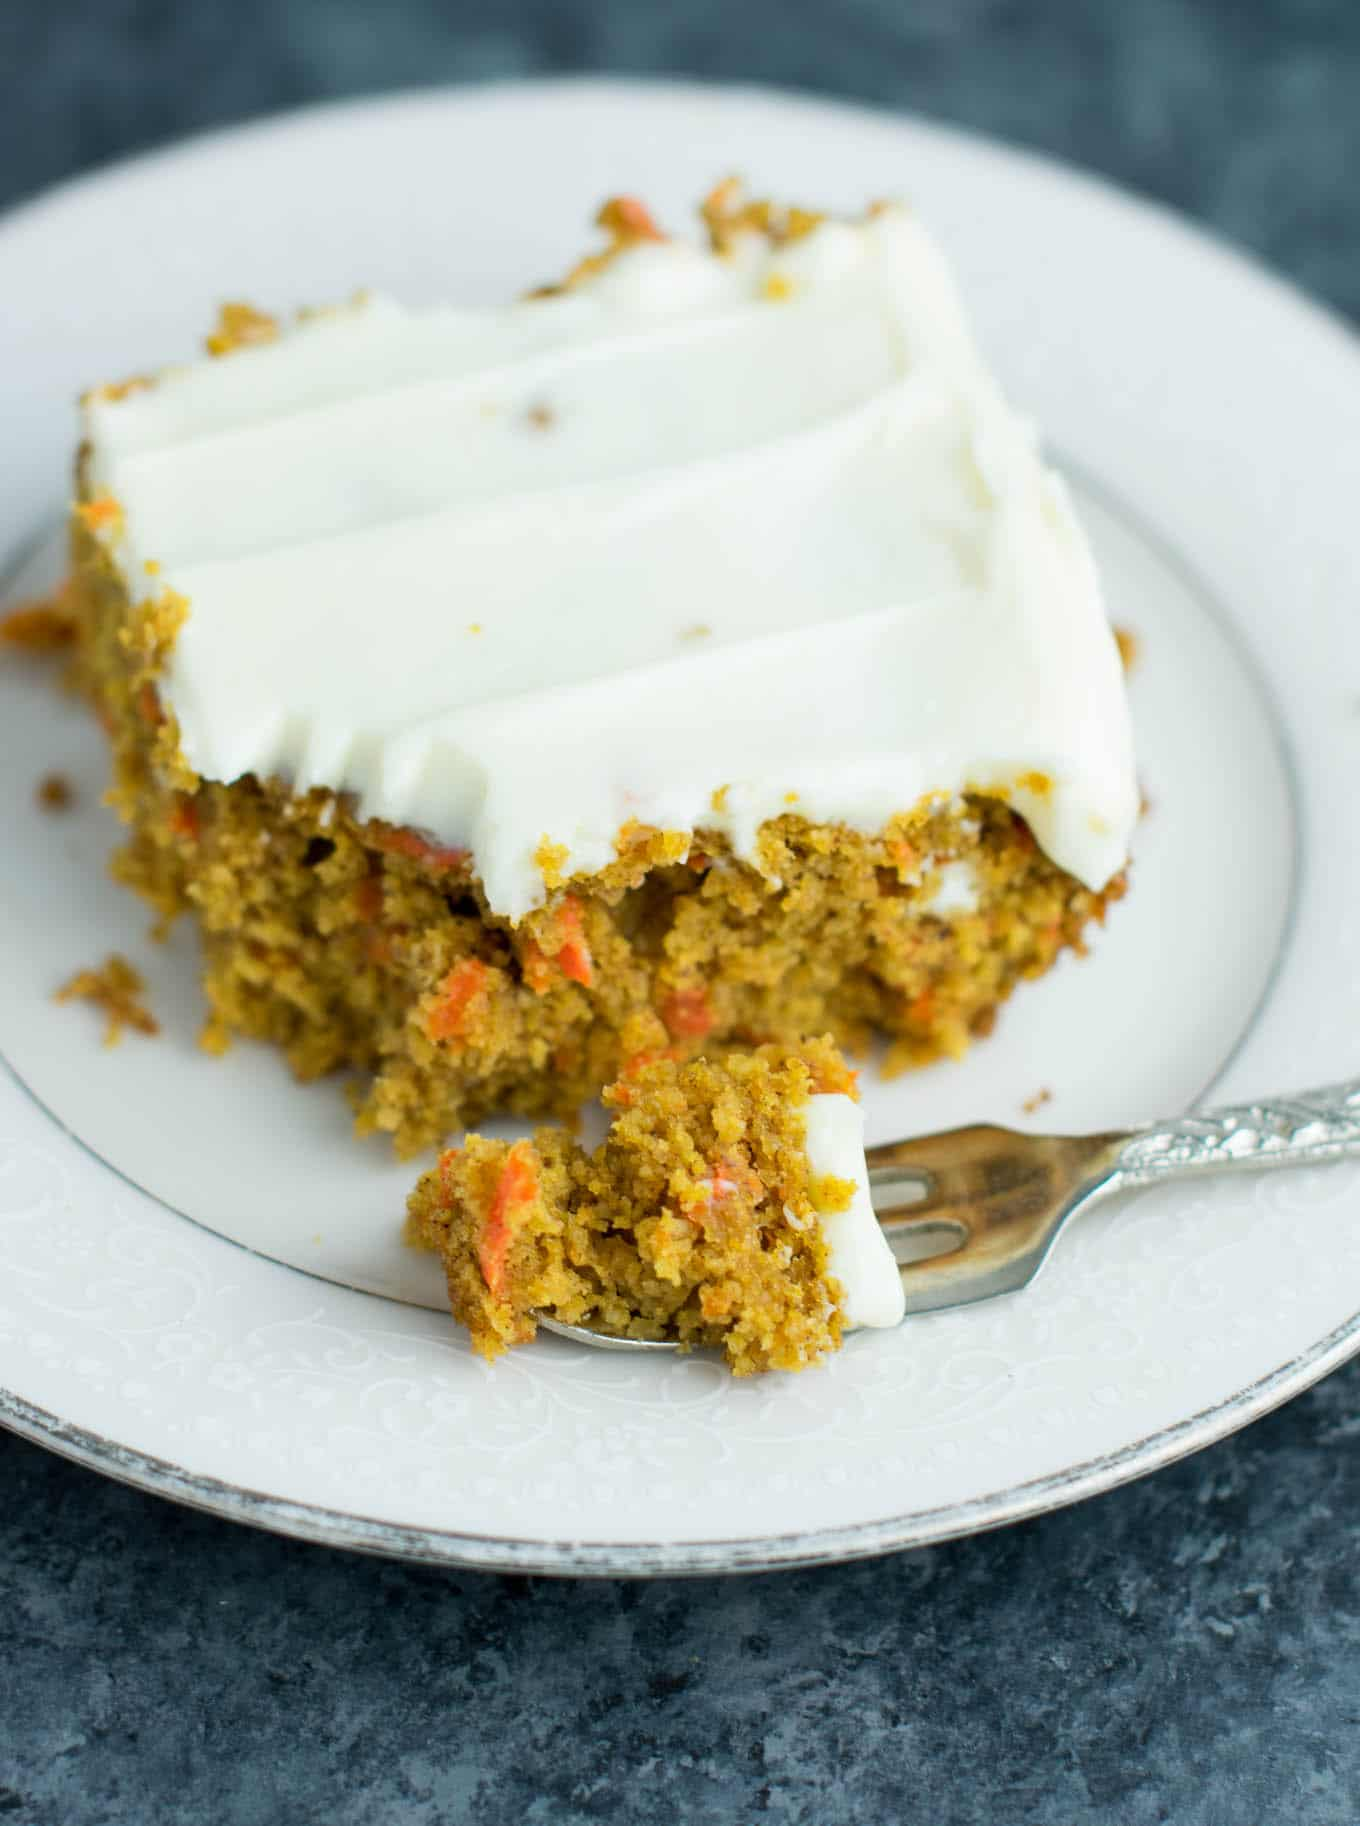 Gluten Free Carrot Cake Recipe With Cream Cheese Frosting